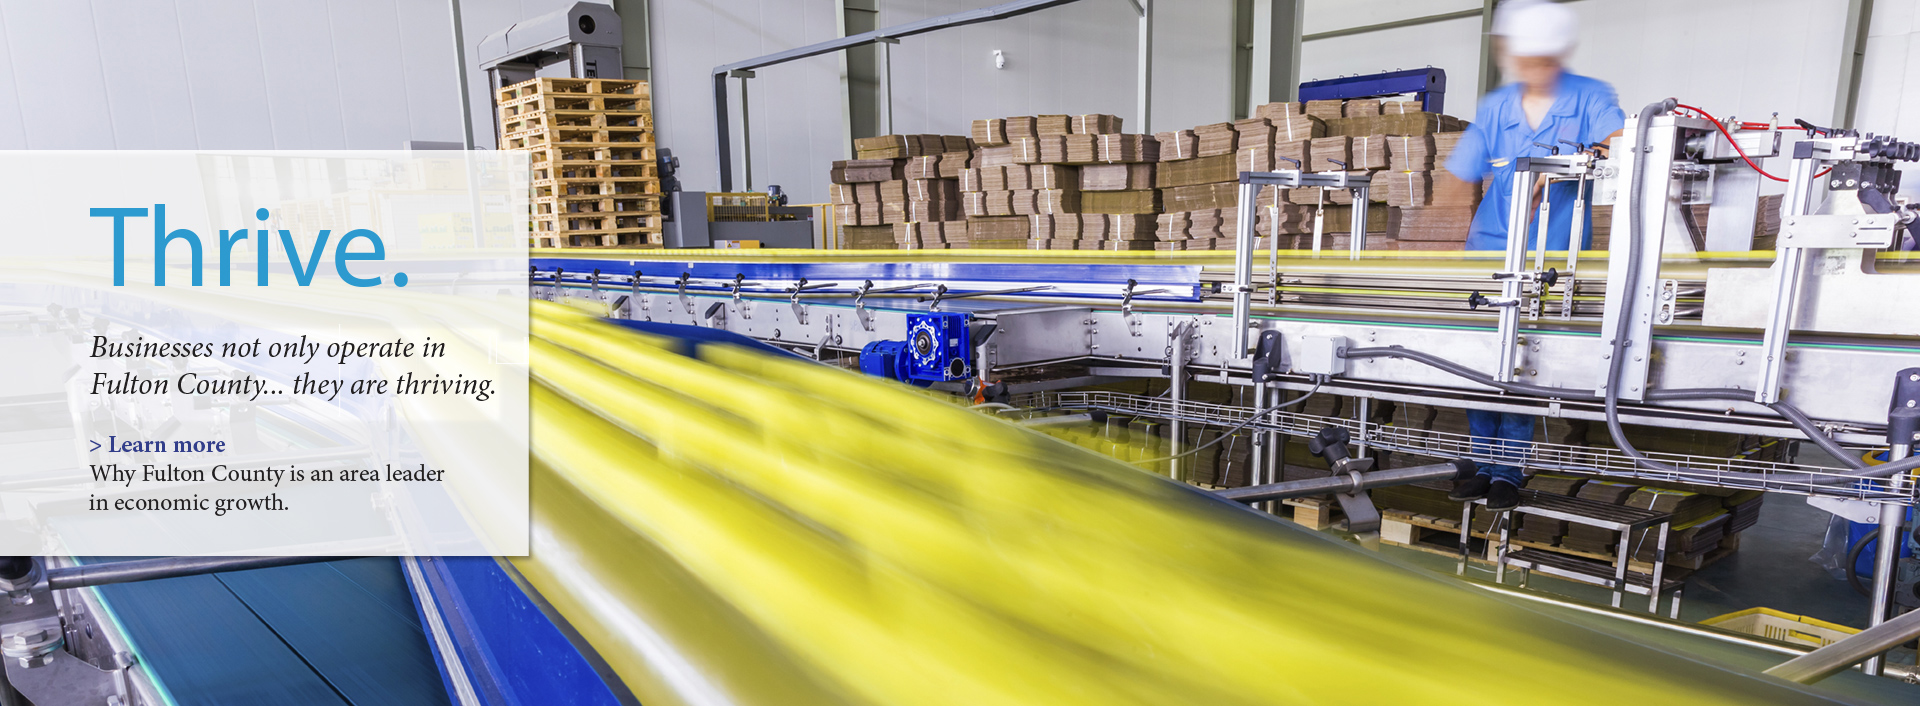 Factory conveyor belt in motion